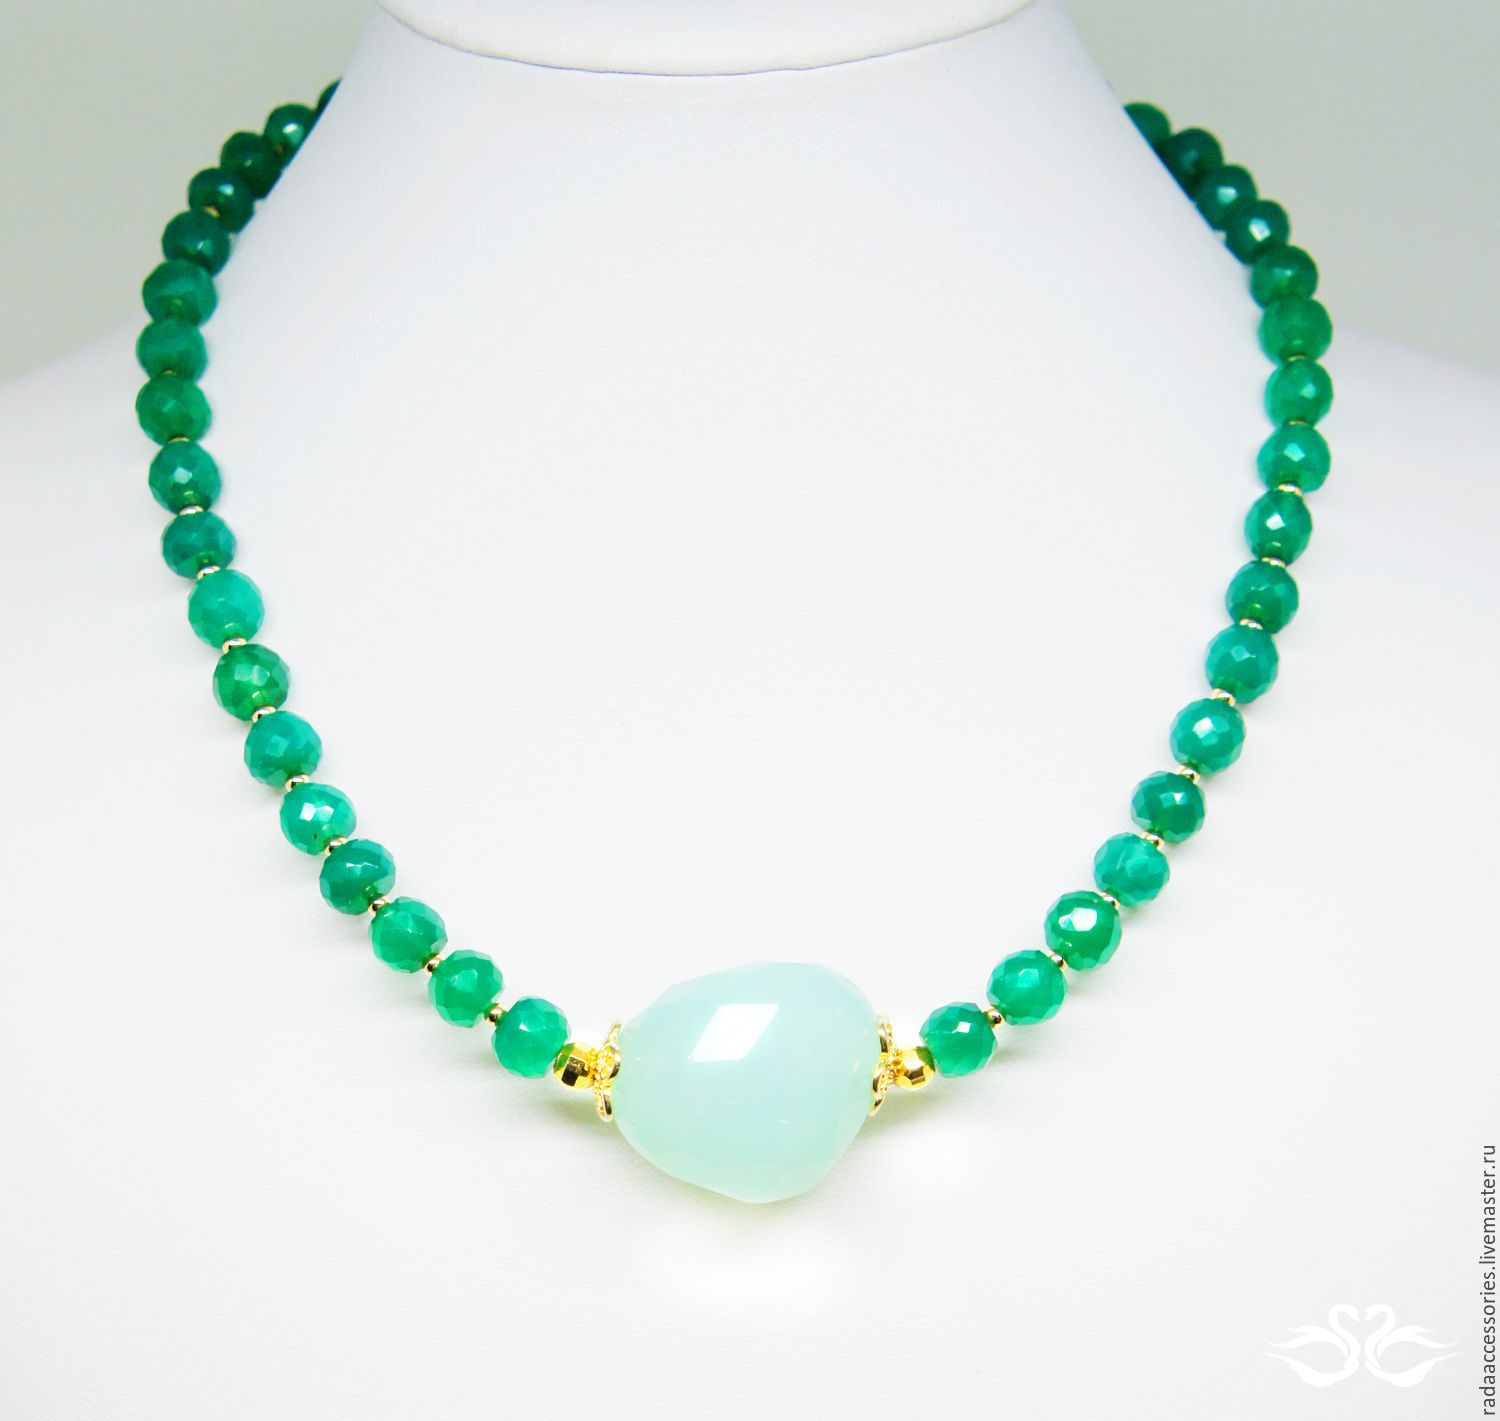 spring gold with chain filled necklace on chrysoprase products clasp